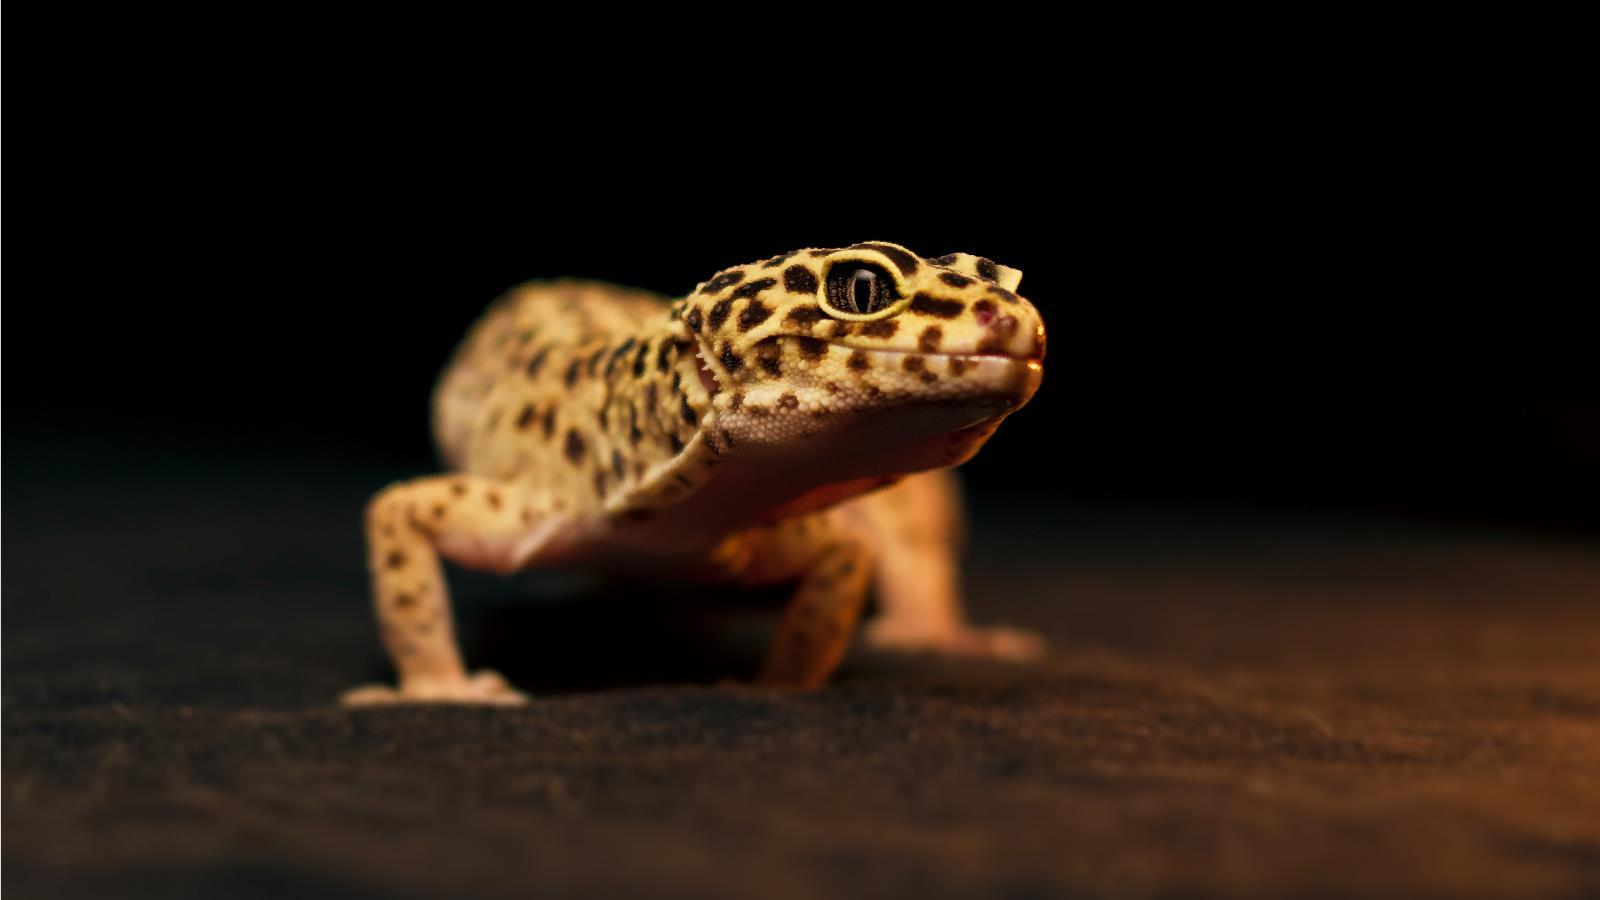 4 Leopard Gecko Wallpapers